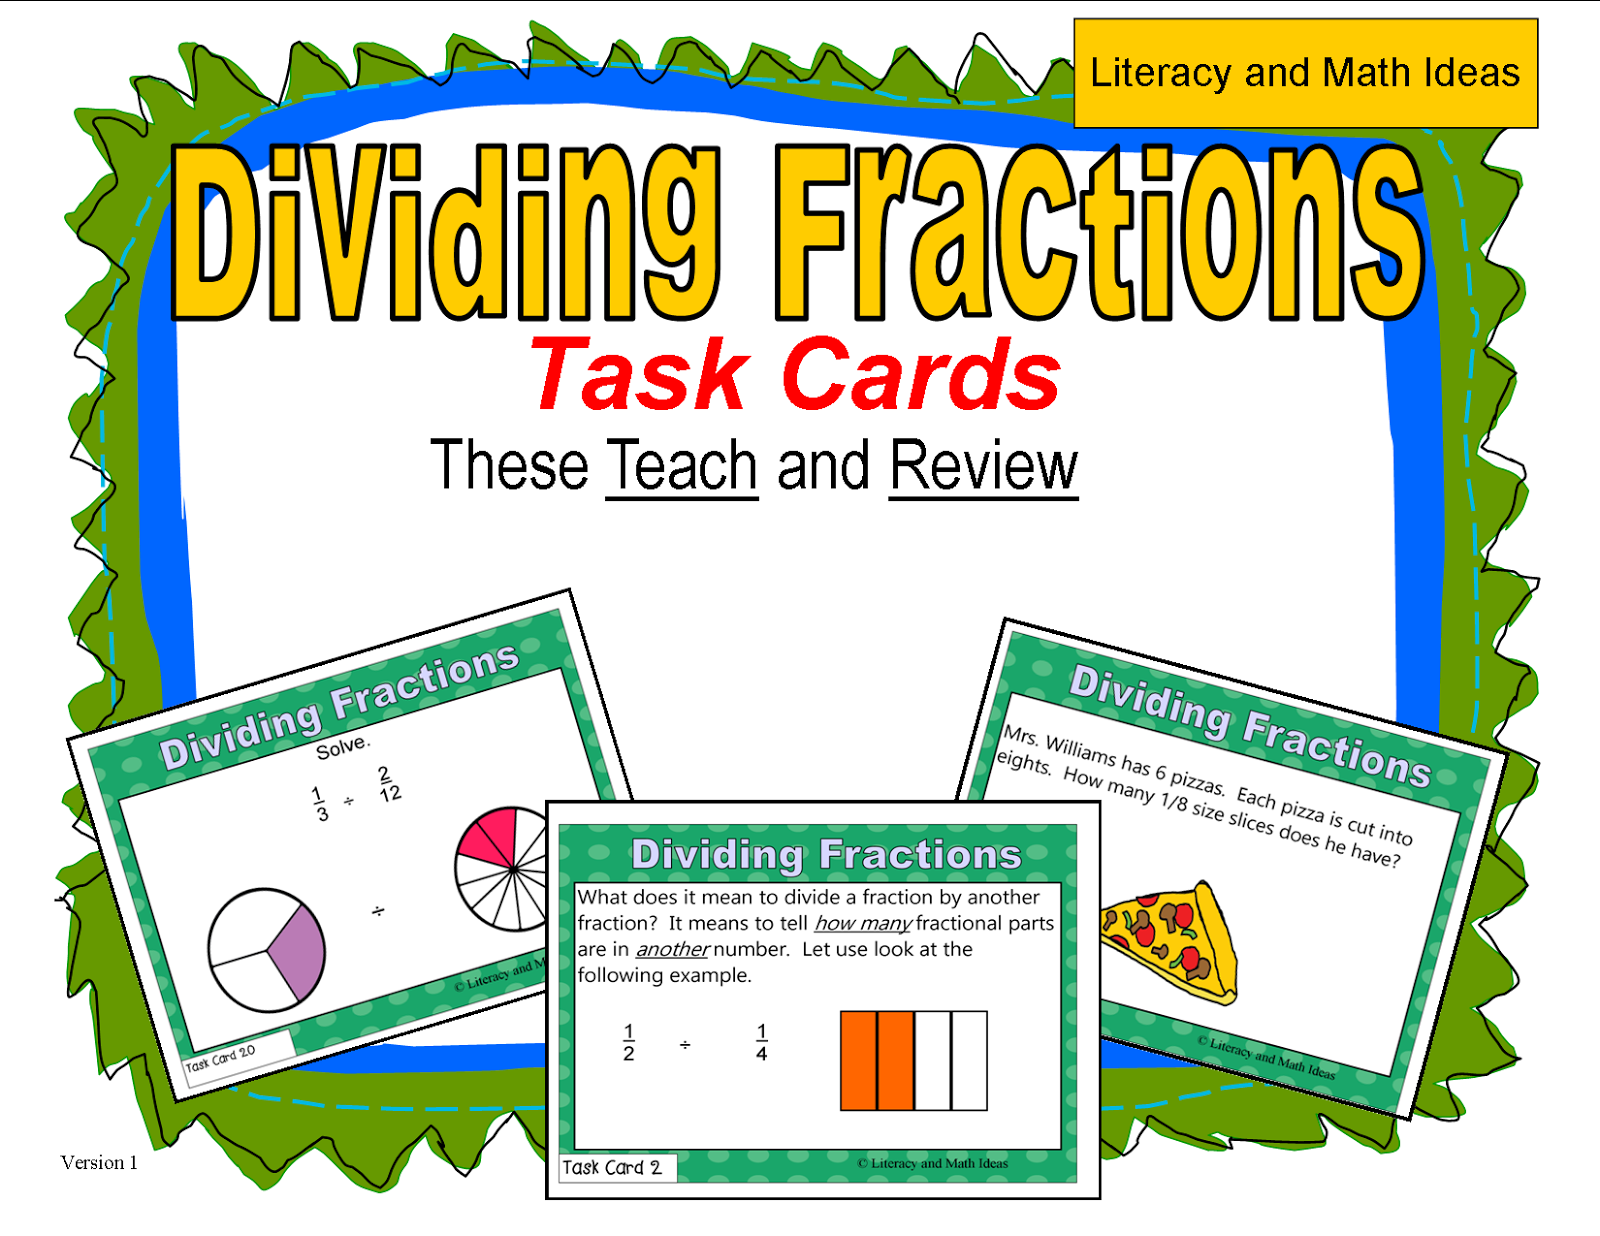 Literacy & Math Ideas: How To Divide Fractions How To Divide Fractions 7th  Grade Solution